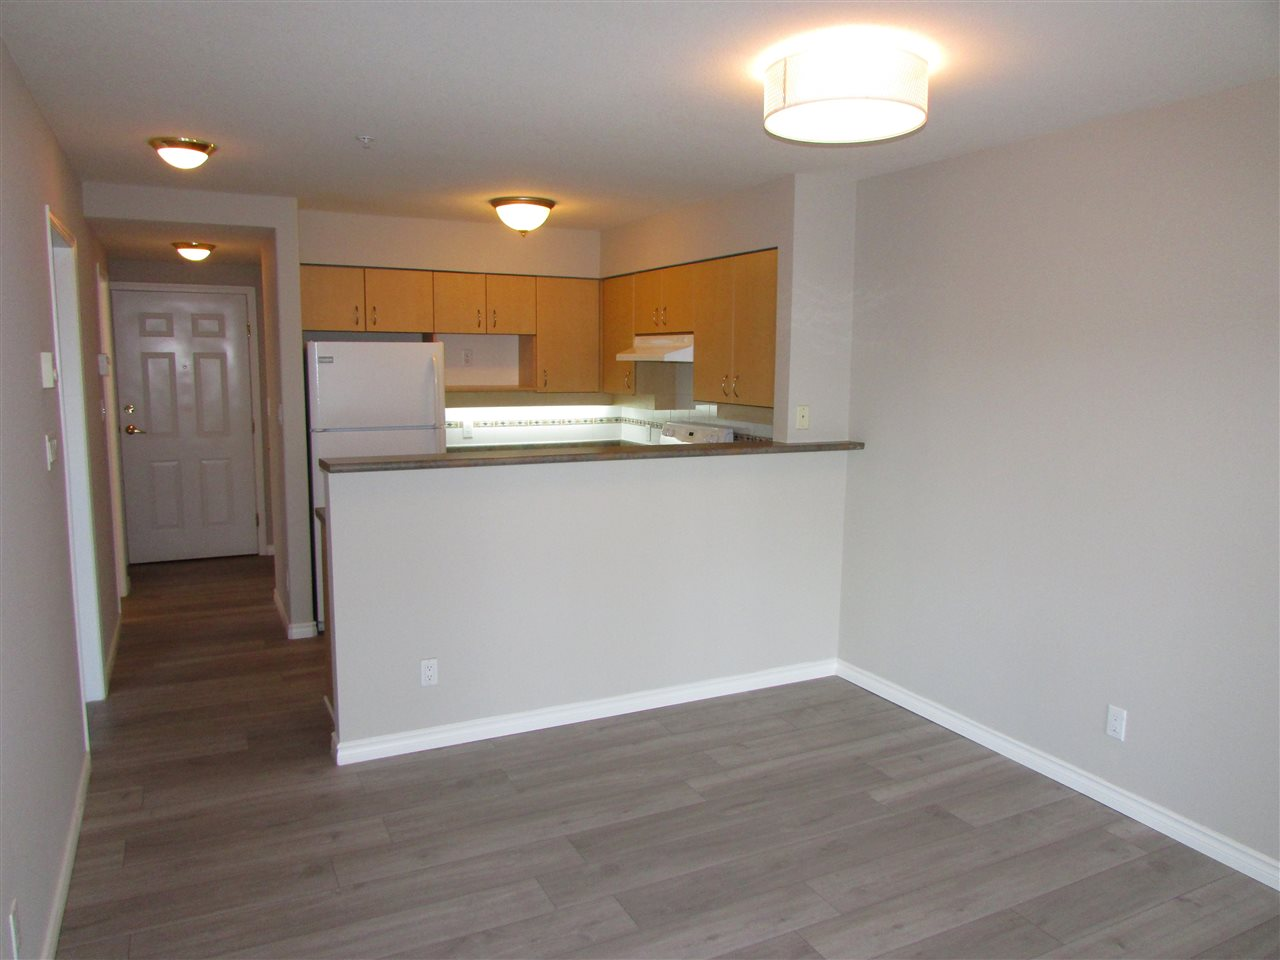 "Photo 5: 315 522 SMITH Avenue in Coquitlam: Coquitlam West Condo for sale in ""SEDONA"" : MLS(r) # R2148678"